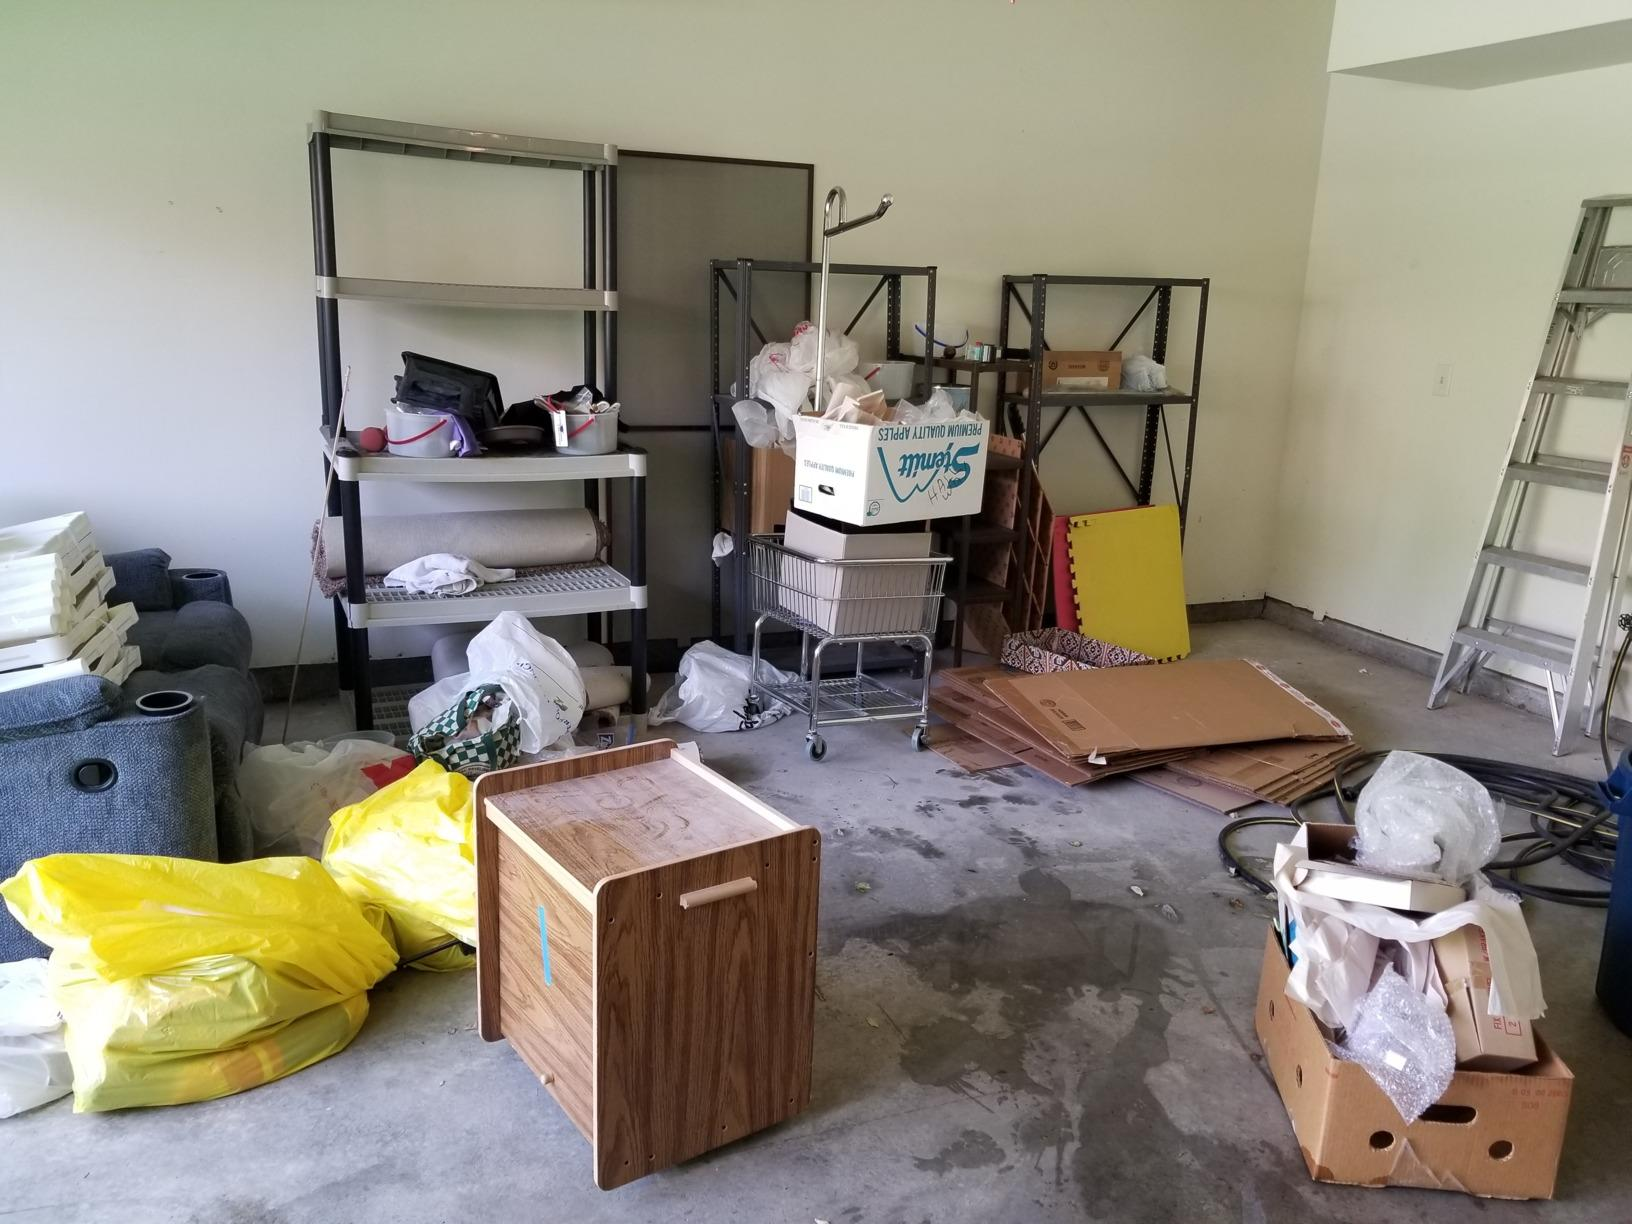 Garage Cleanout in Olathe, KS - Before Photo